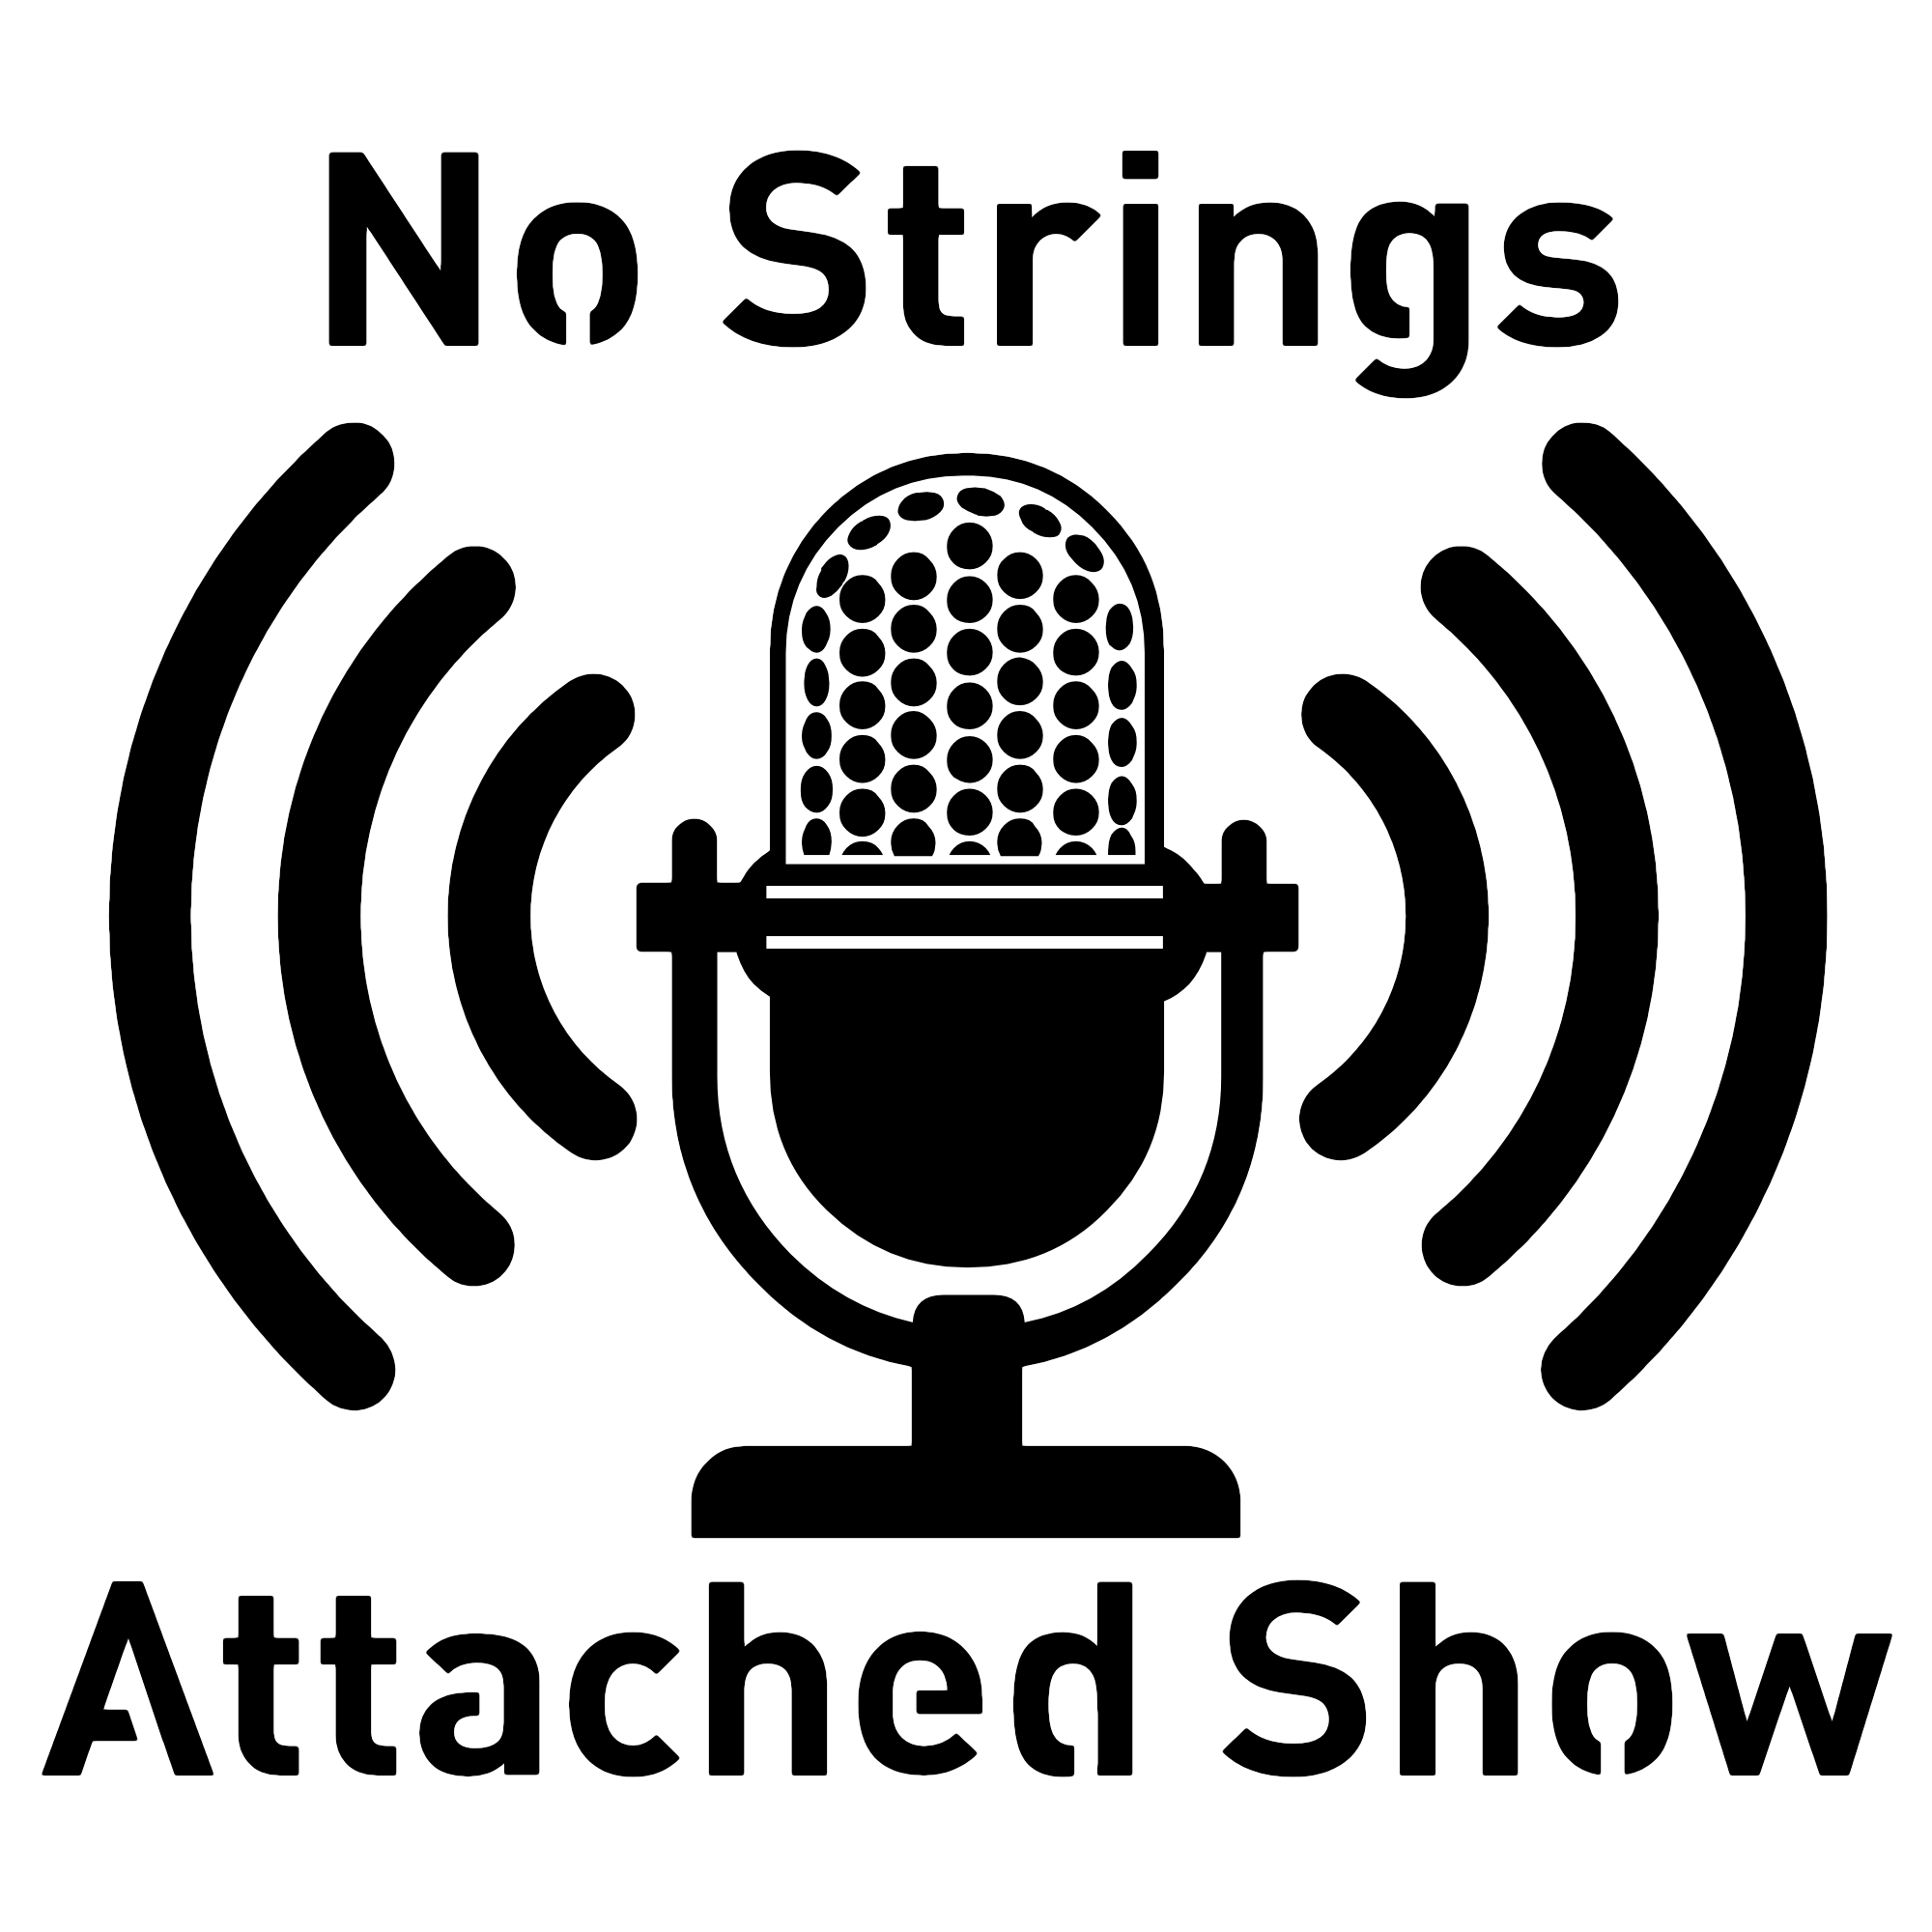 No Strings Attached Show